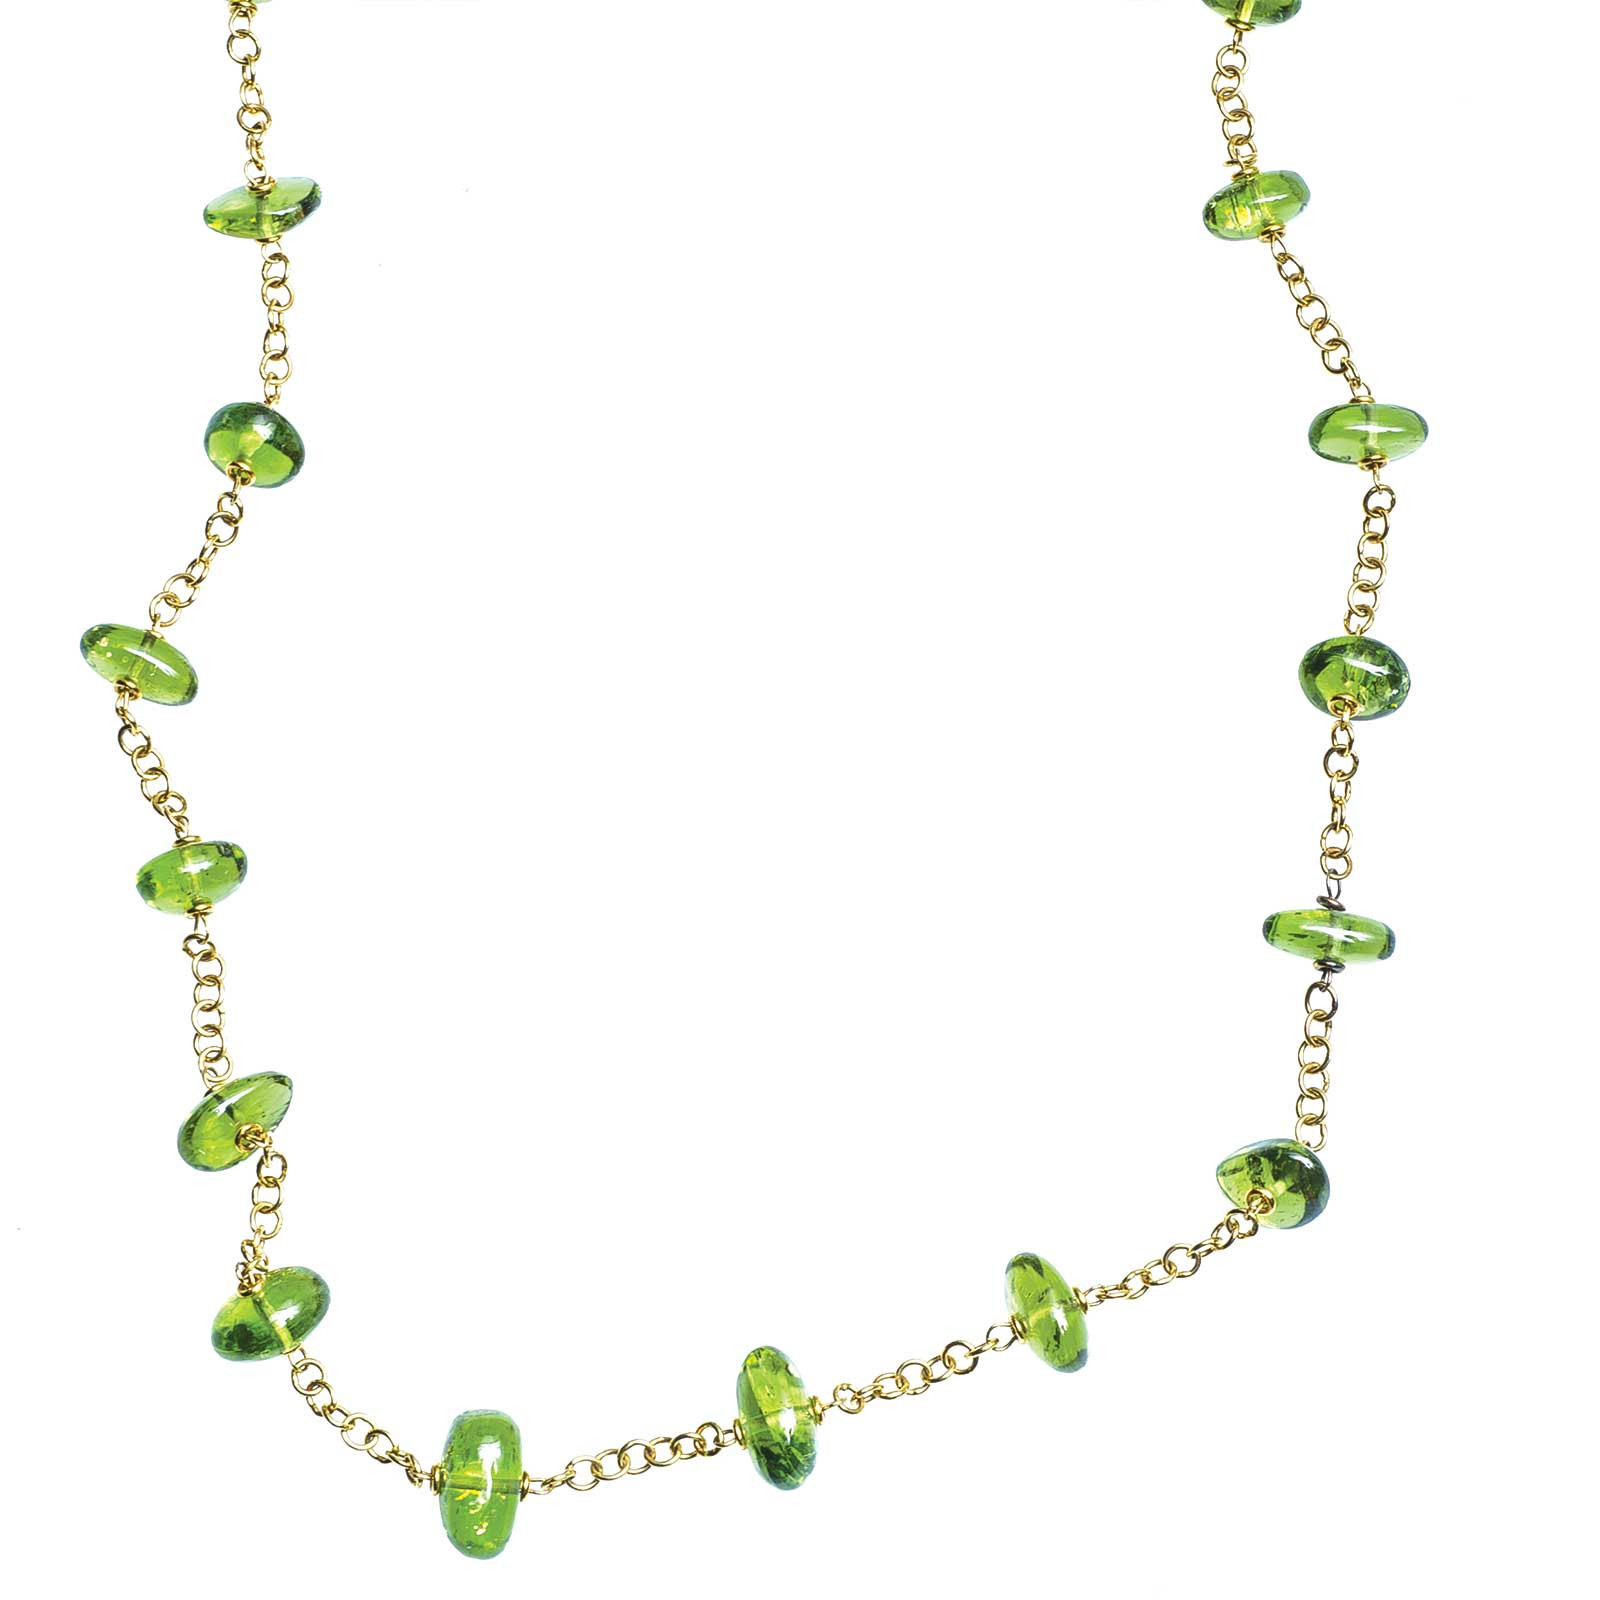 Vintage Peridot Bead Necklace